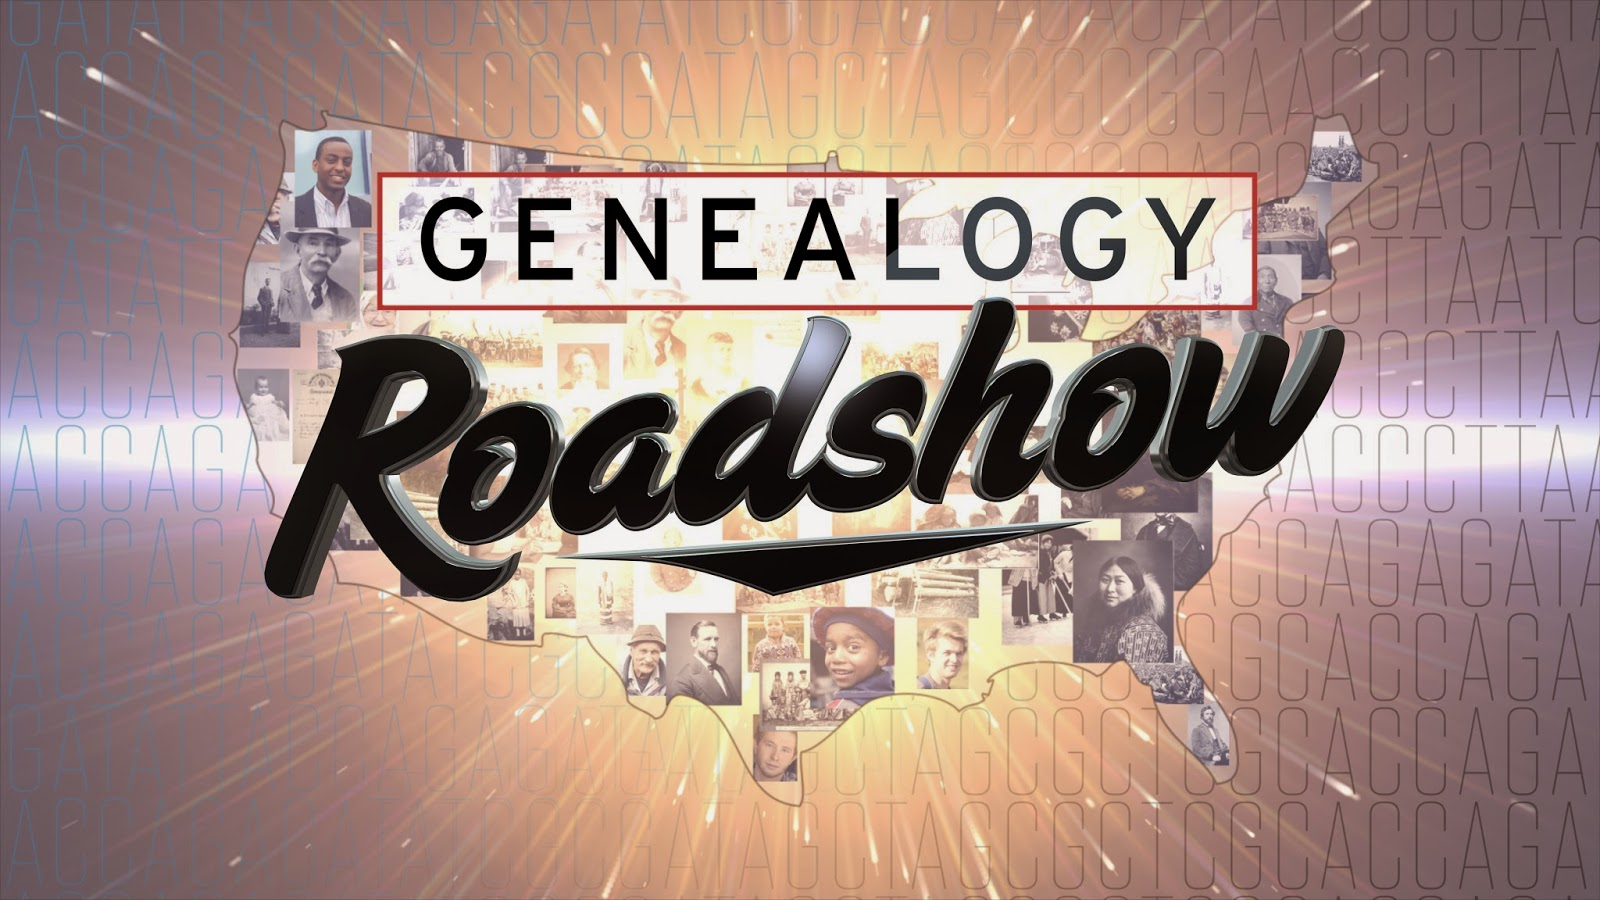 Join Us in New Orleans for Genealogy Roadshow! via FGS.org